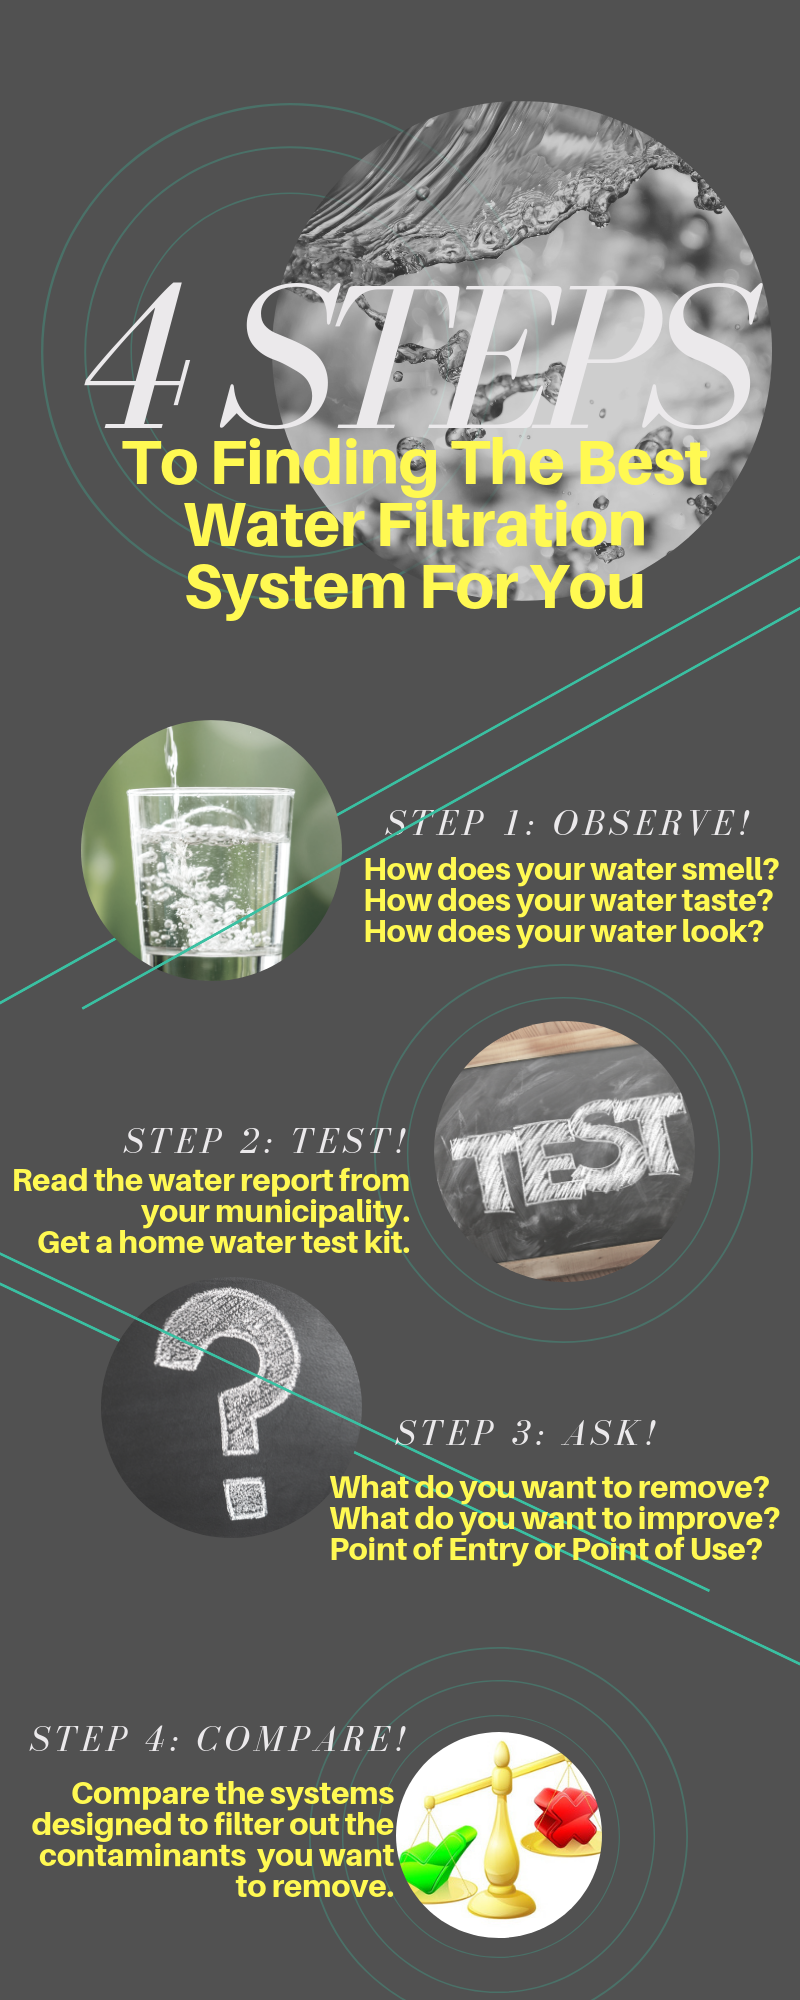 4 Steps to Deciding on a Water Filtration System for Your Home